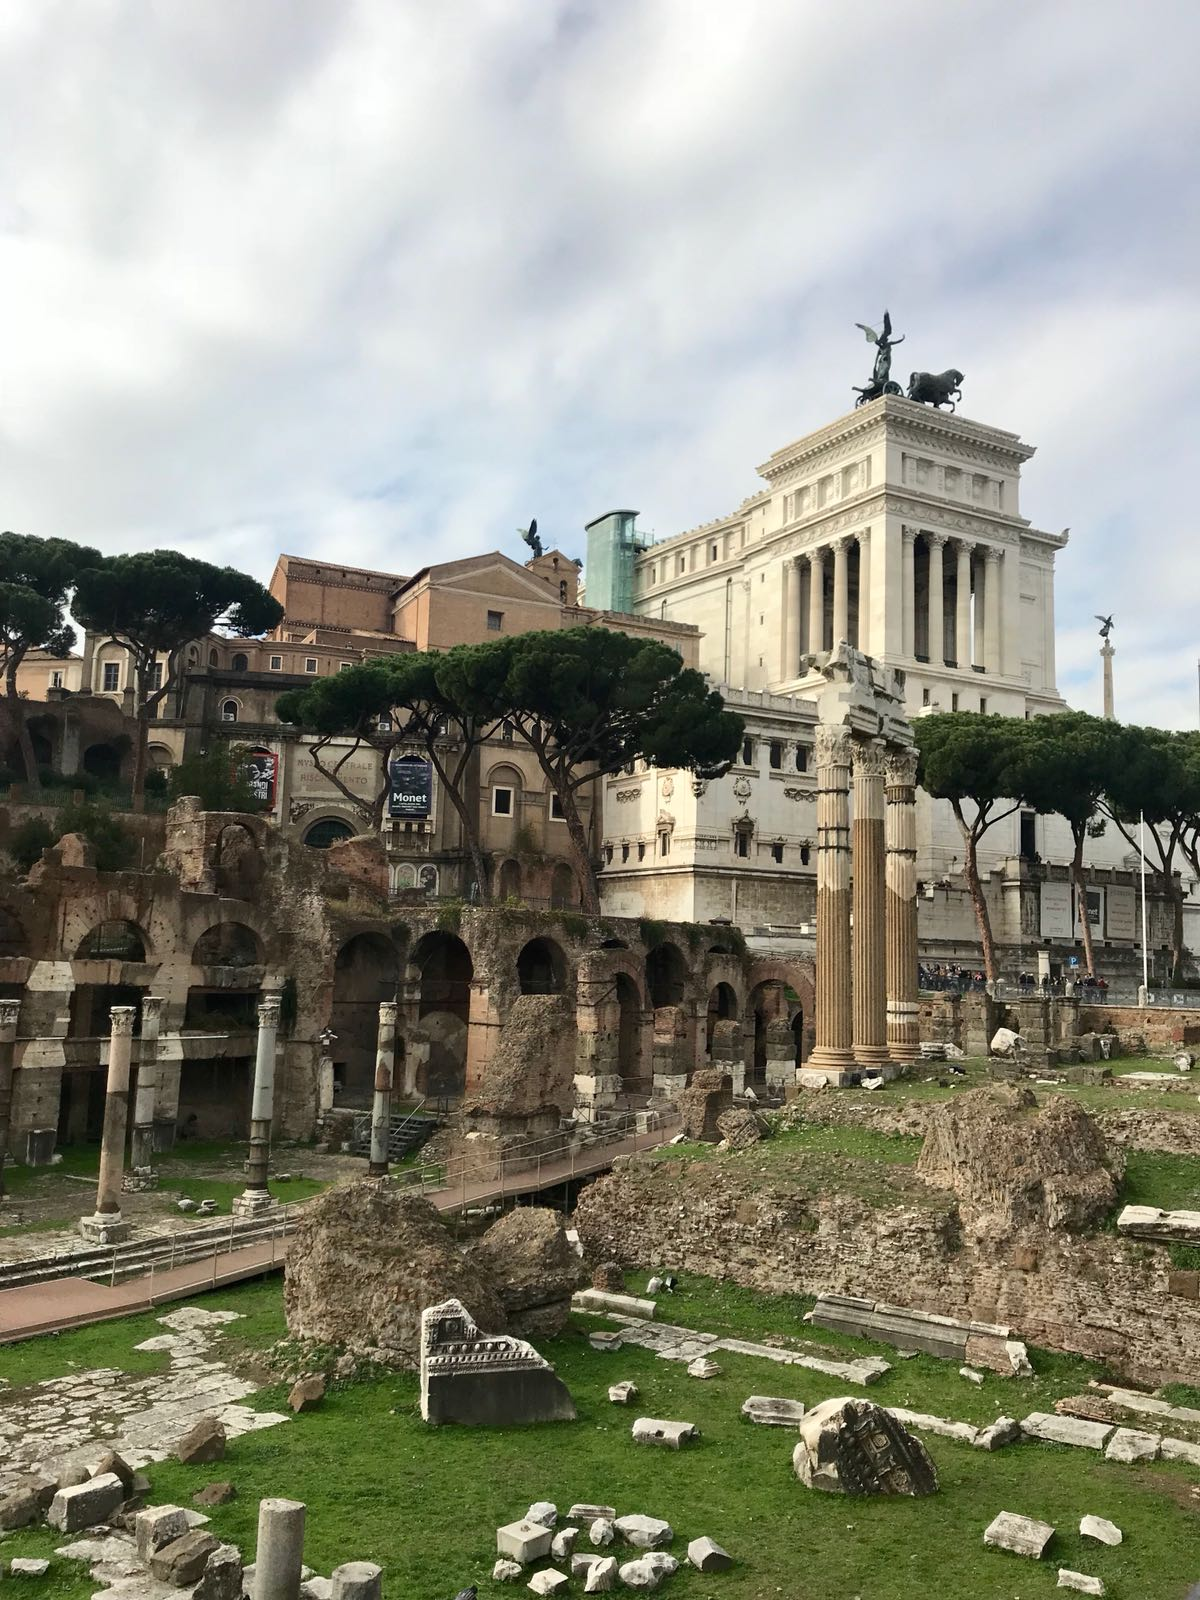 The Forum in Rome with the Altar of The Fatherland building in the background